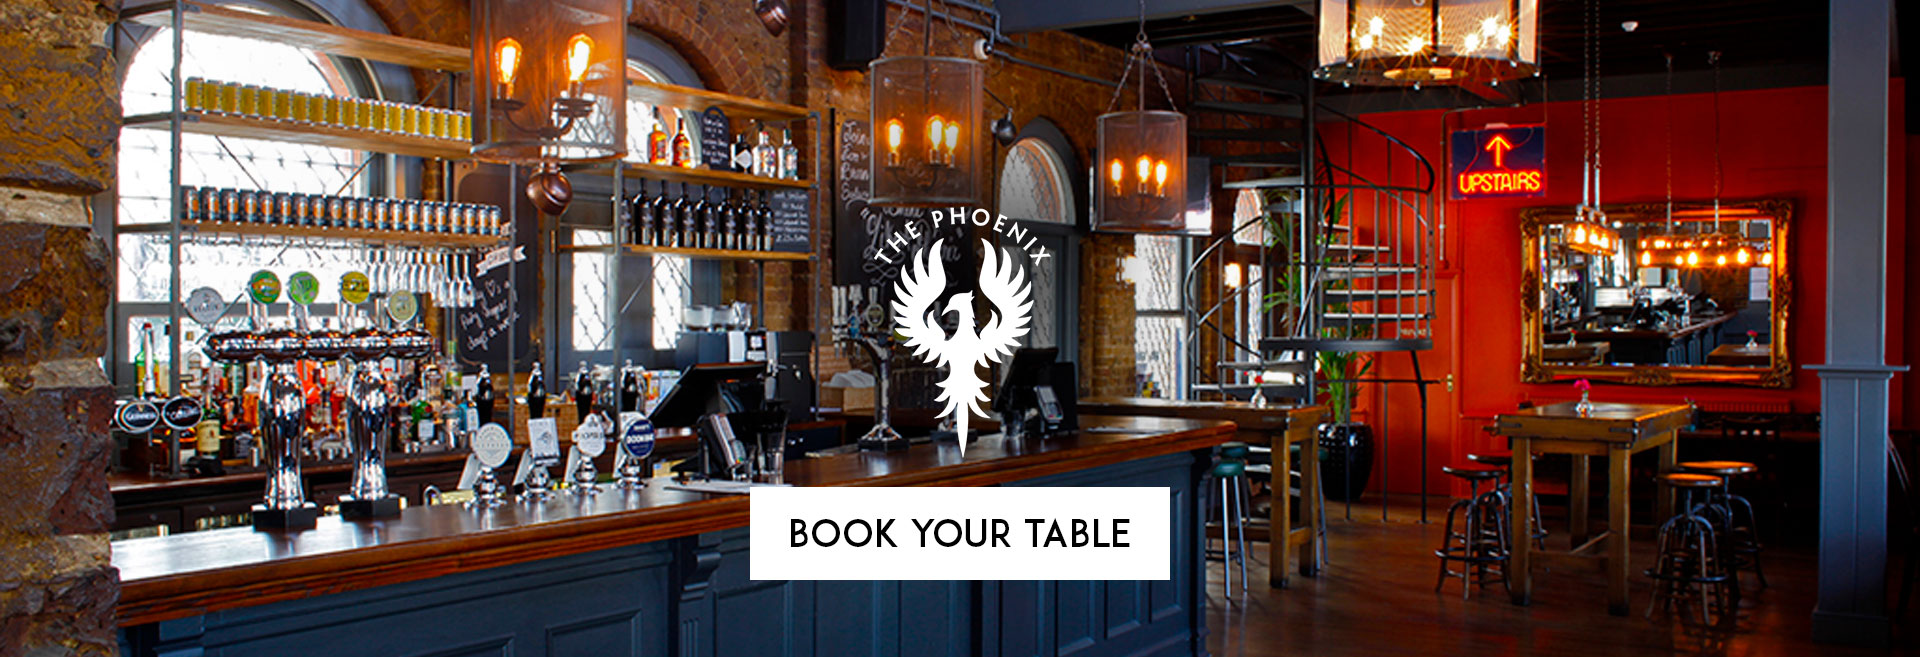 Book Your Table at The Phoenix